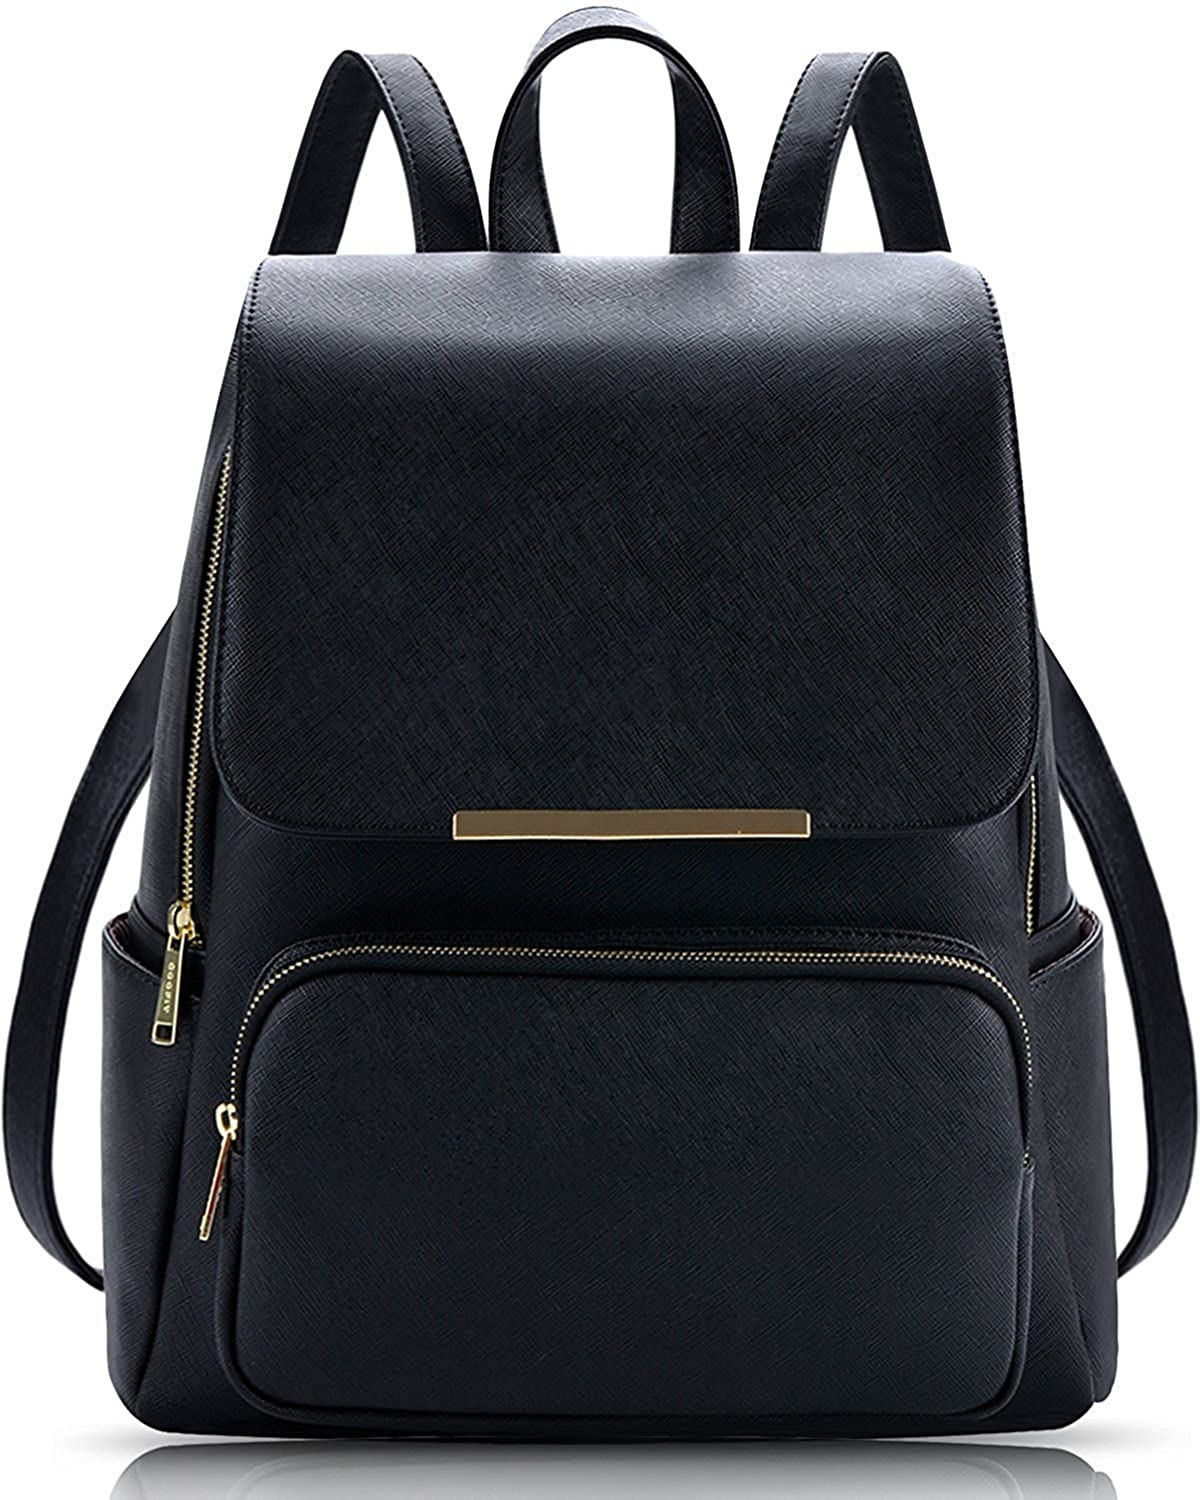 d7a310bf108f Alice Pu Material Girls Cadence Casual Backpack School   College Bag And  Clutc Combo(Prebkp9) (Black With Clutch)  Amazon.in  Shoes   Handbags